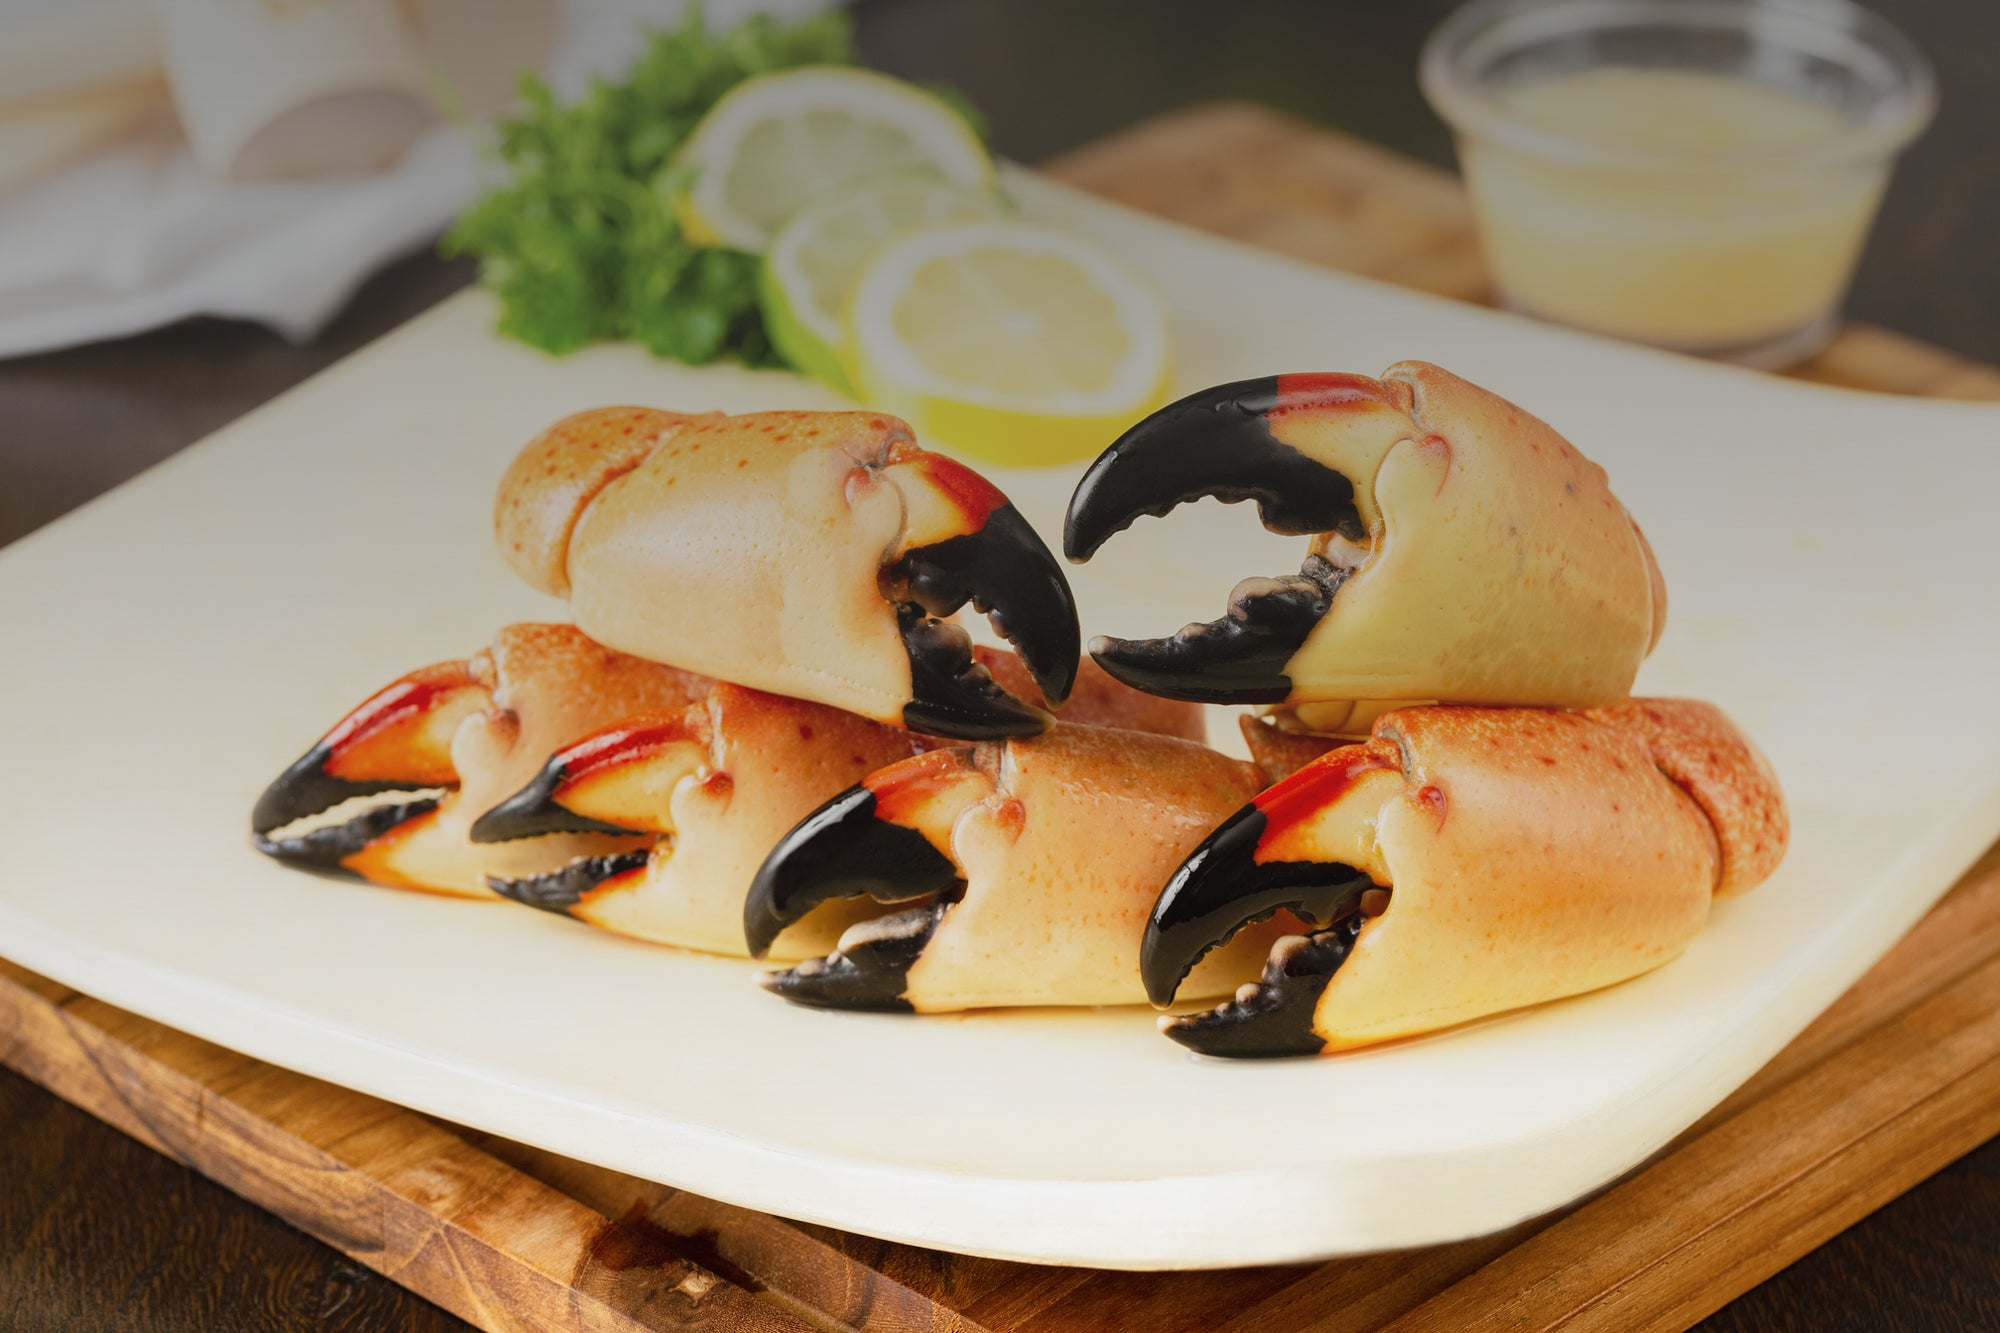 Buy Stone Crabs by the claw from Florida or order Stone Crabs Meals fresh never frozen